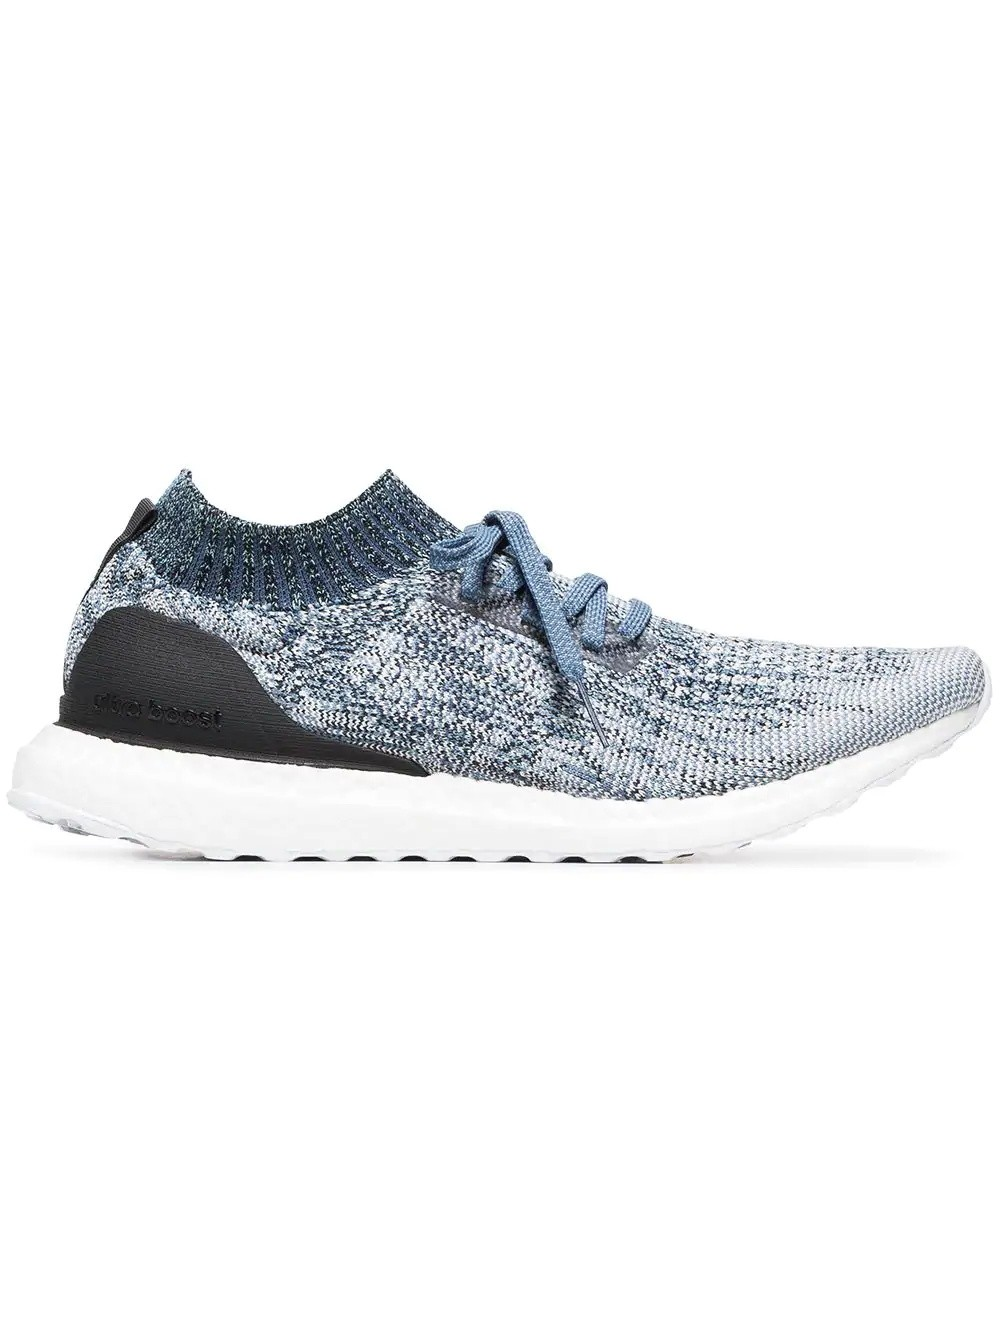 Adidas Ultraboost Uncaged Parley Homme Bleu/Blanche AC7590